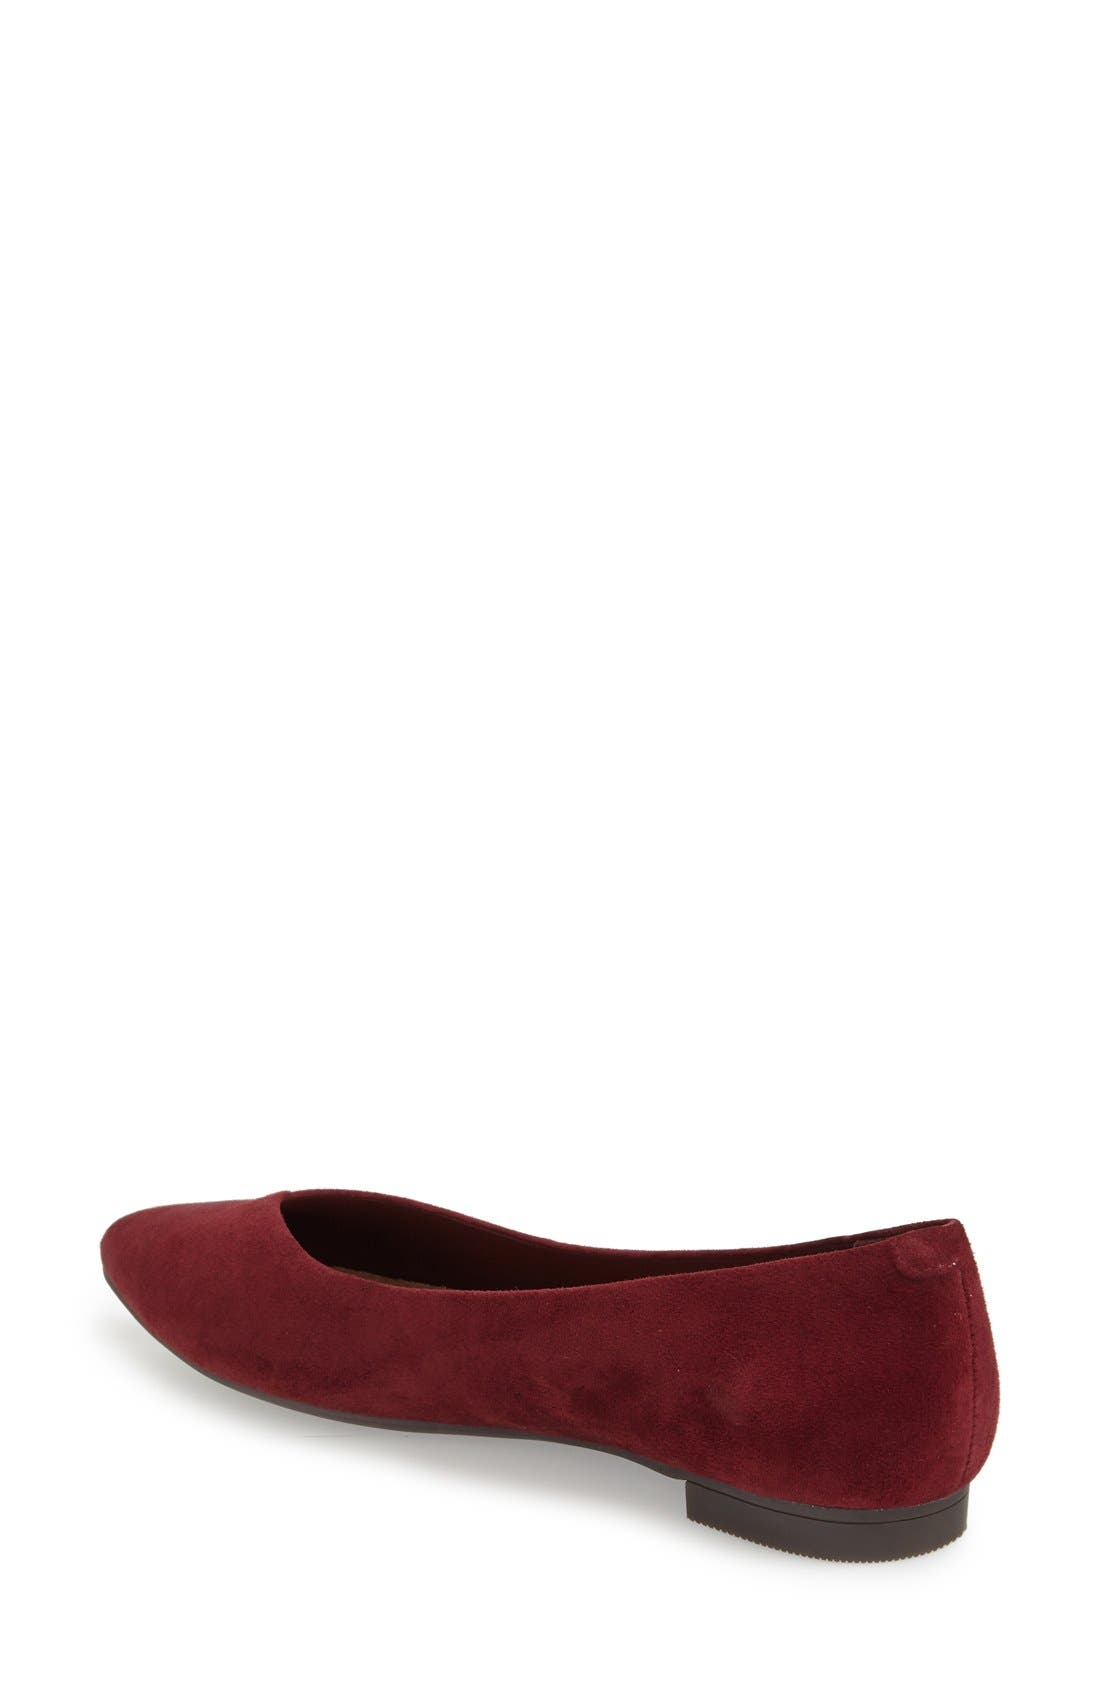 'Caballo' Pointy Toe Flat,                             Alternate thumbnail 3, color,                             Merlot Suede